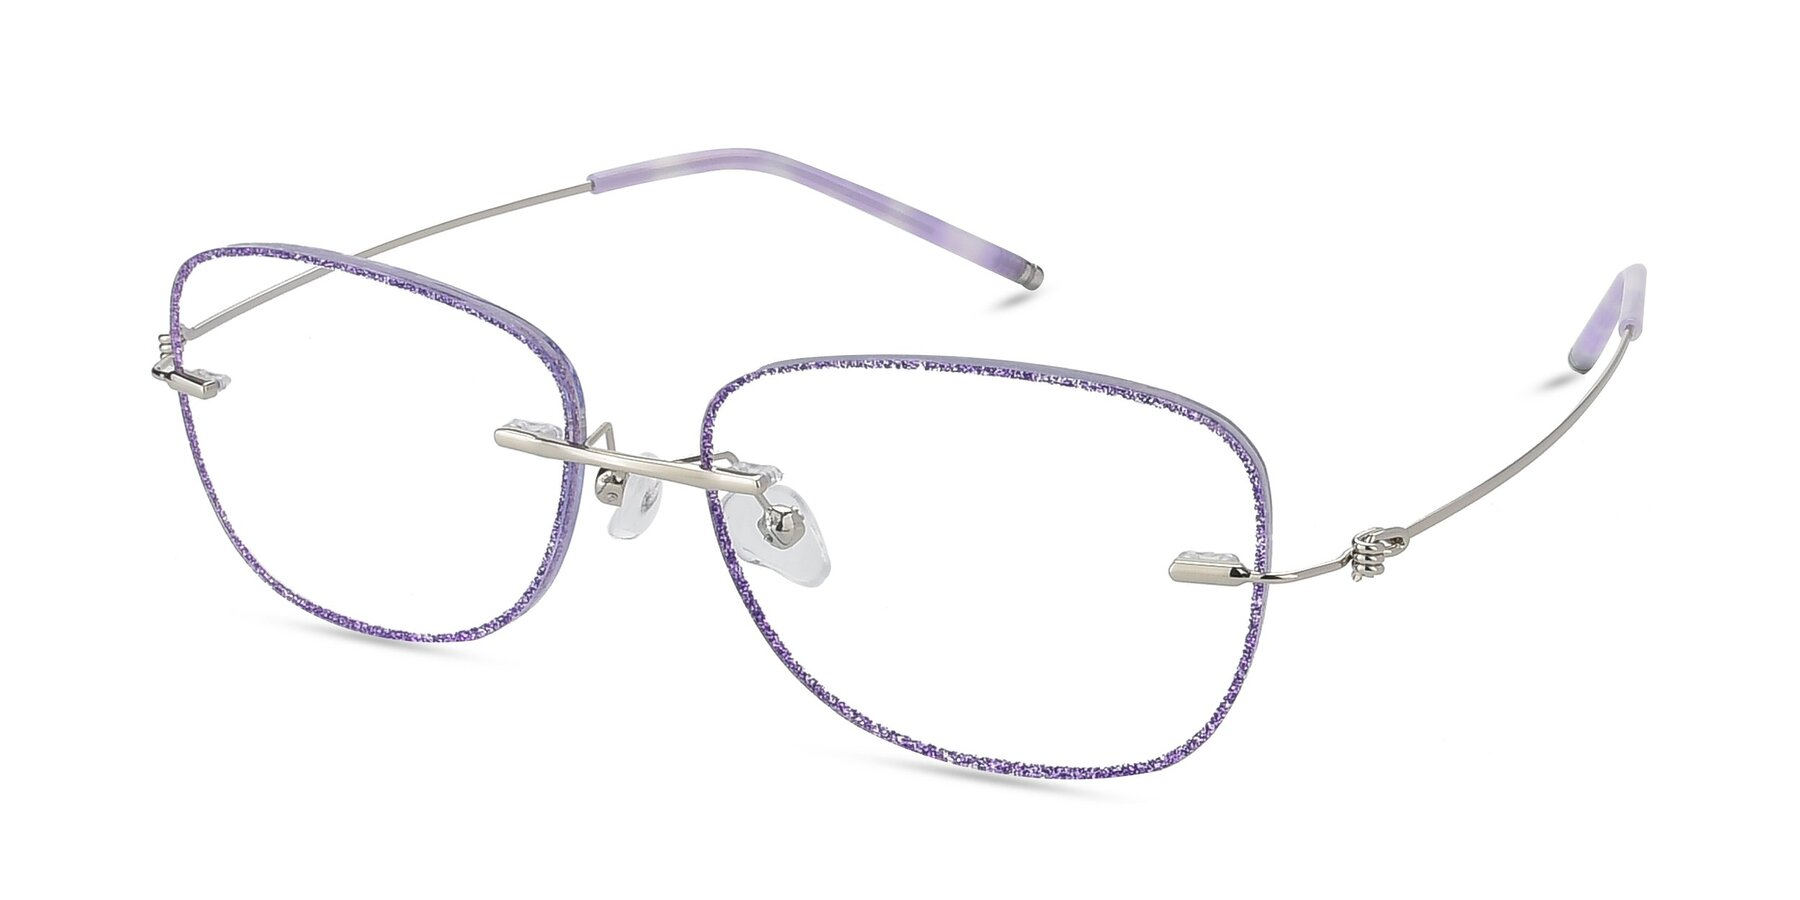 Angle of Y7002 in Purple-Silver with Clear Blue Light Blocking Lenses